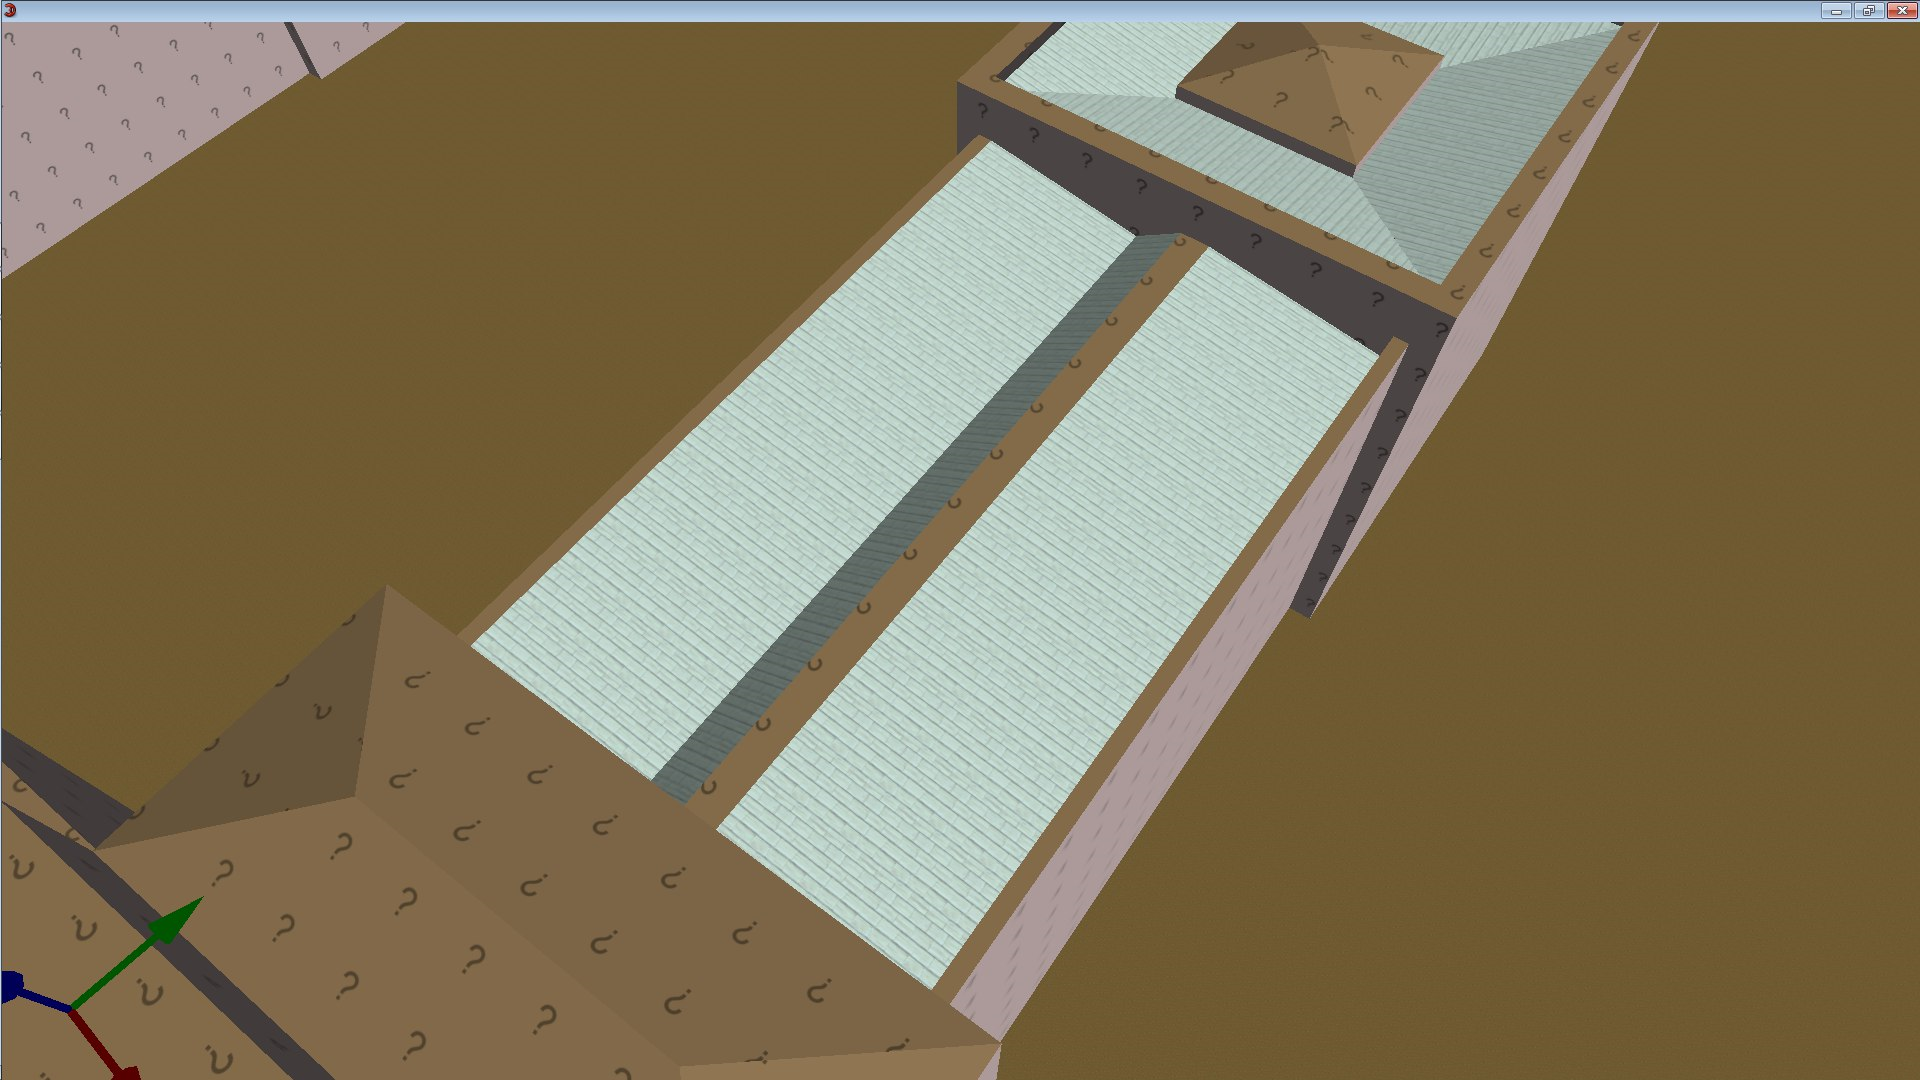 following license: English Kendzi3D previewer in JOSM. Museu Paulista remodeling screenshot. Detail of the rooftop. author name string: Igor Eliezer Borges